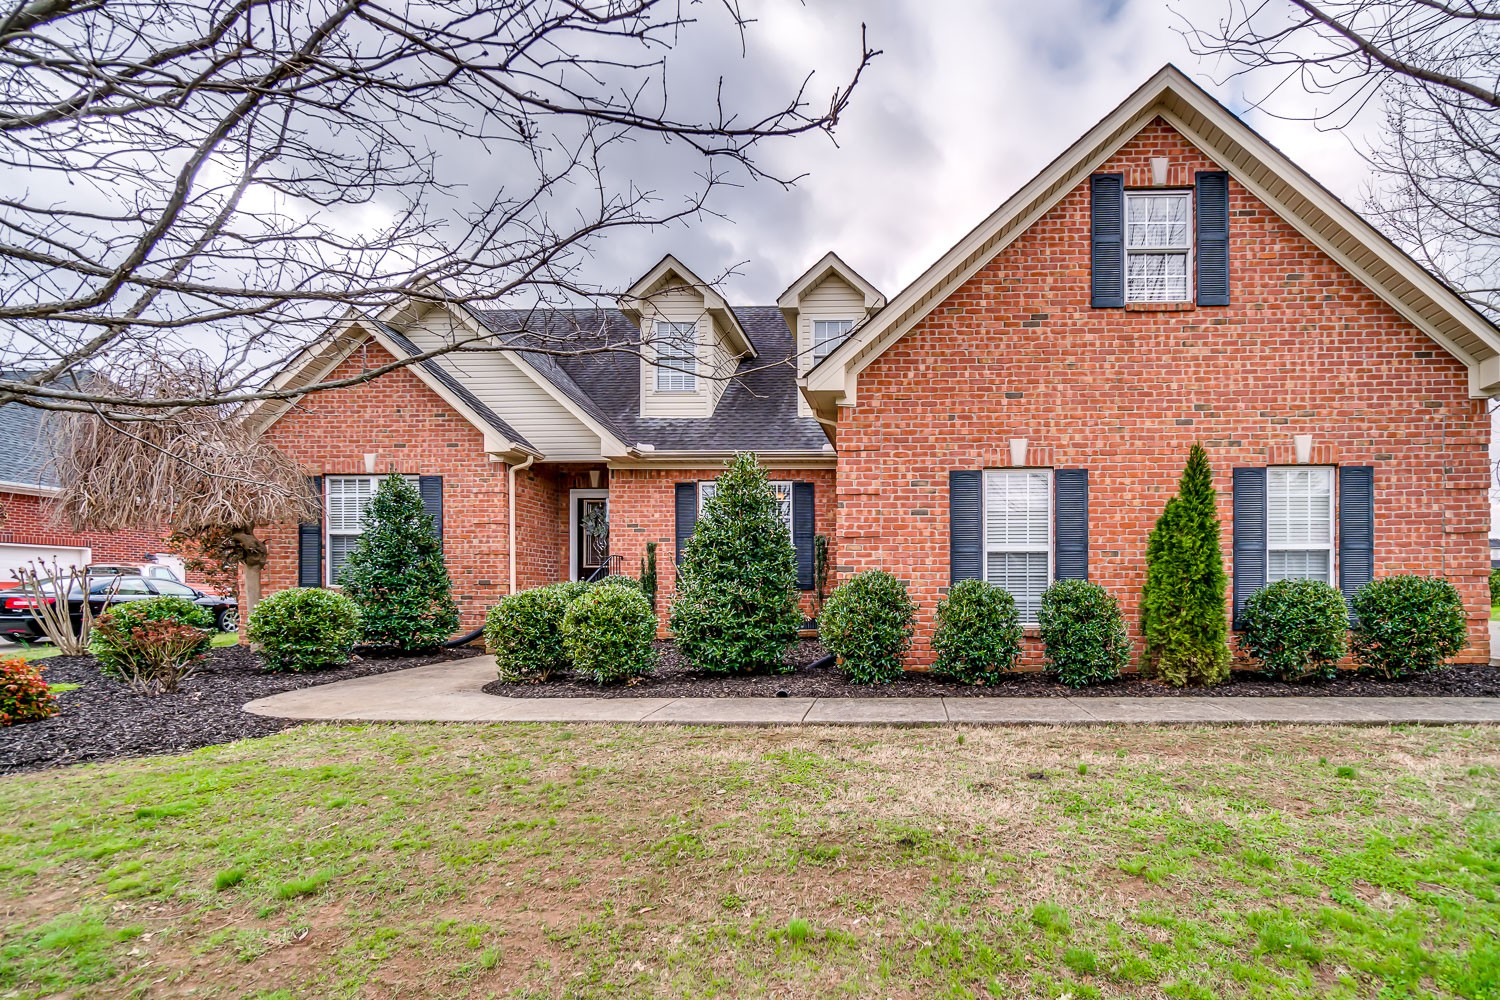 1176 Ithaca St Property Photo - Murfreesboro, TN real estate listing